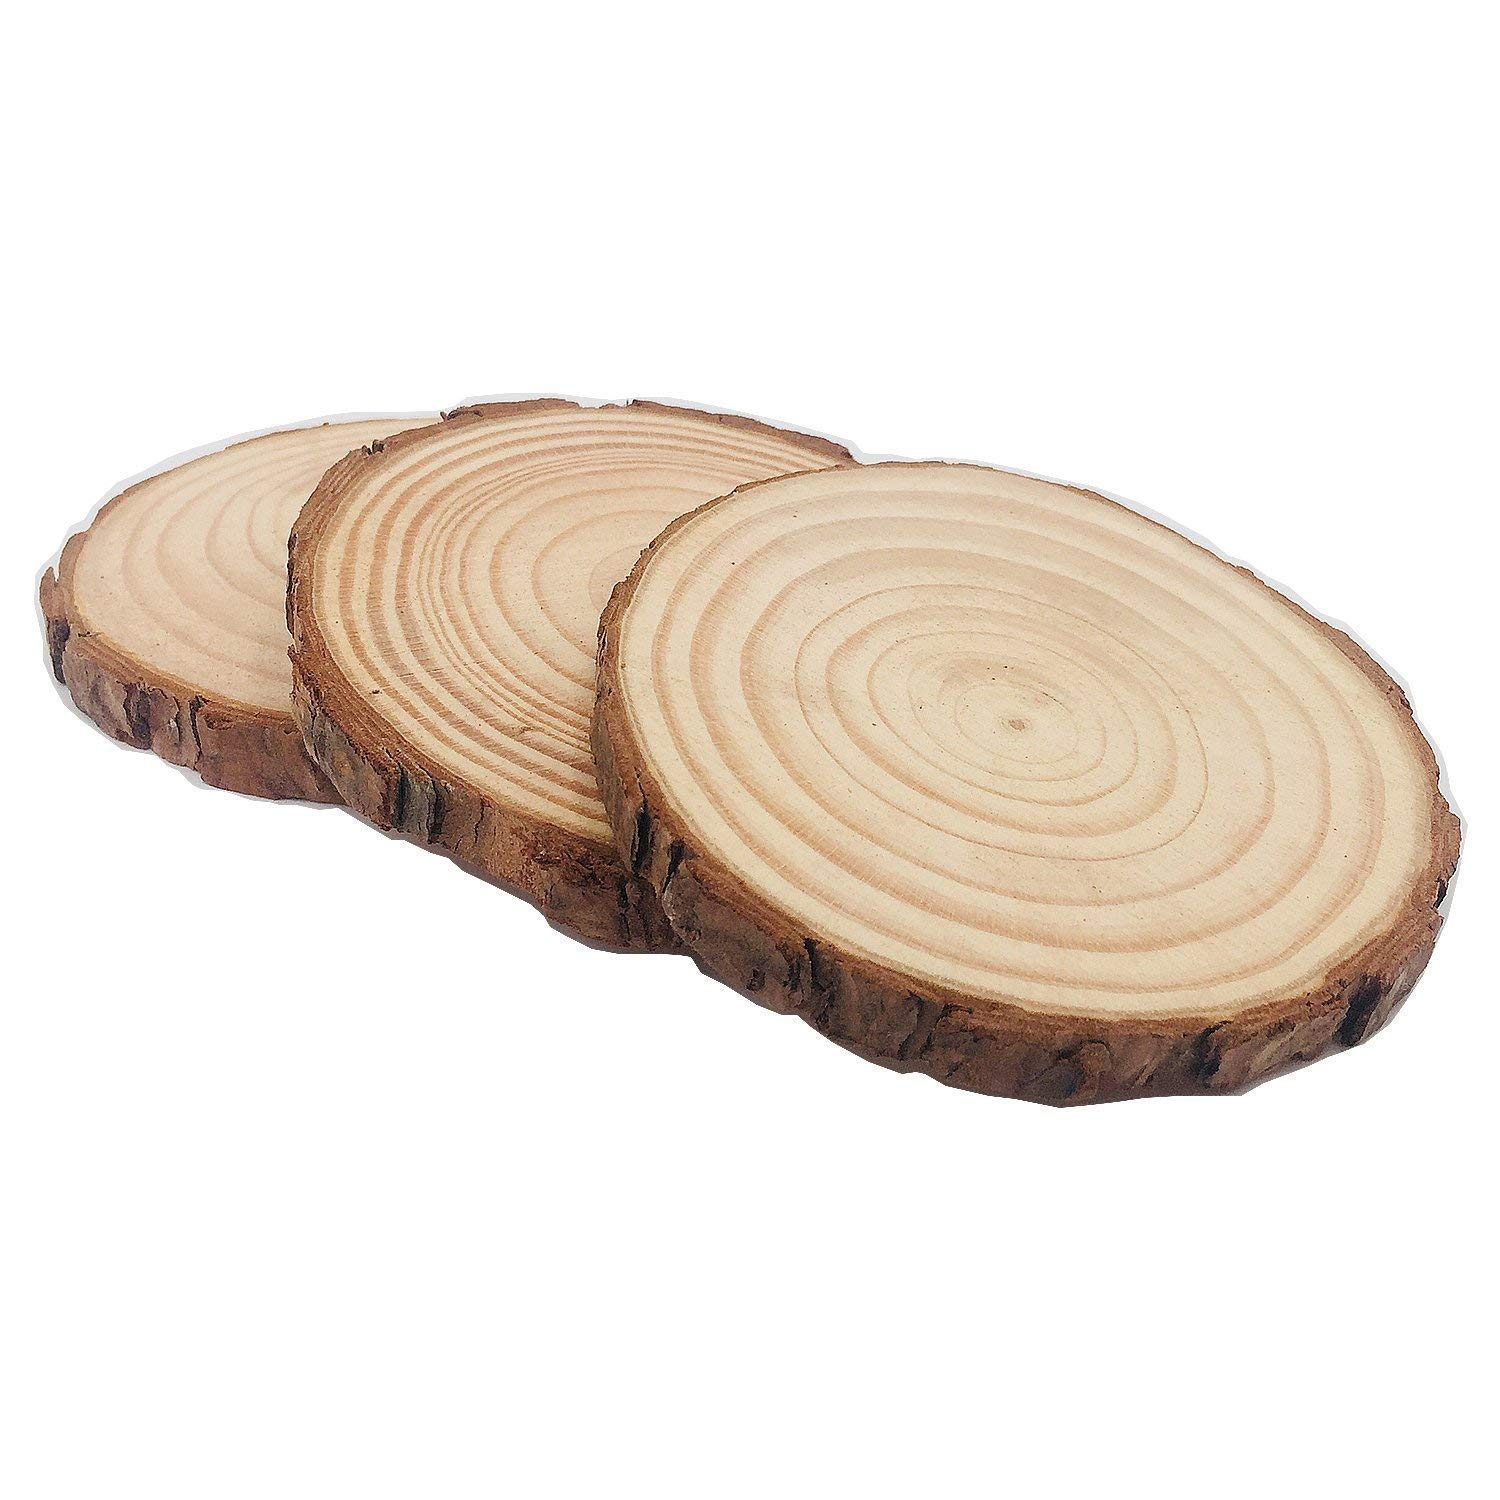 MUPIANLX Natural Wood Slices with Tree Bark Unfinished Round Wooden Discs for Crafts Coasters DIY Ornaments 15pcs 3.5 4